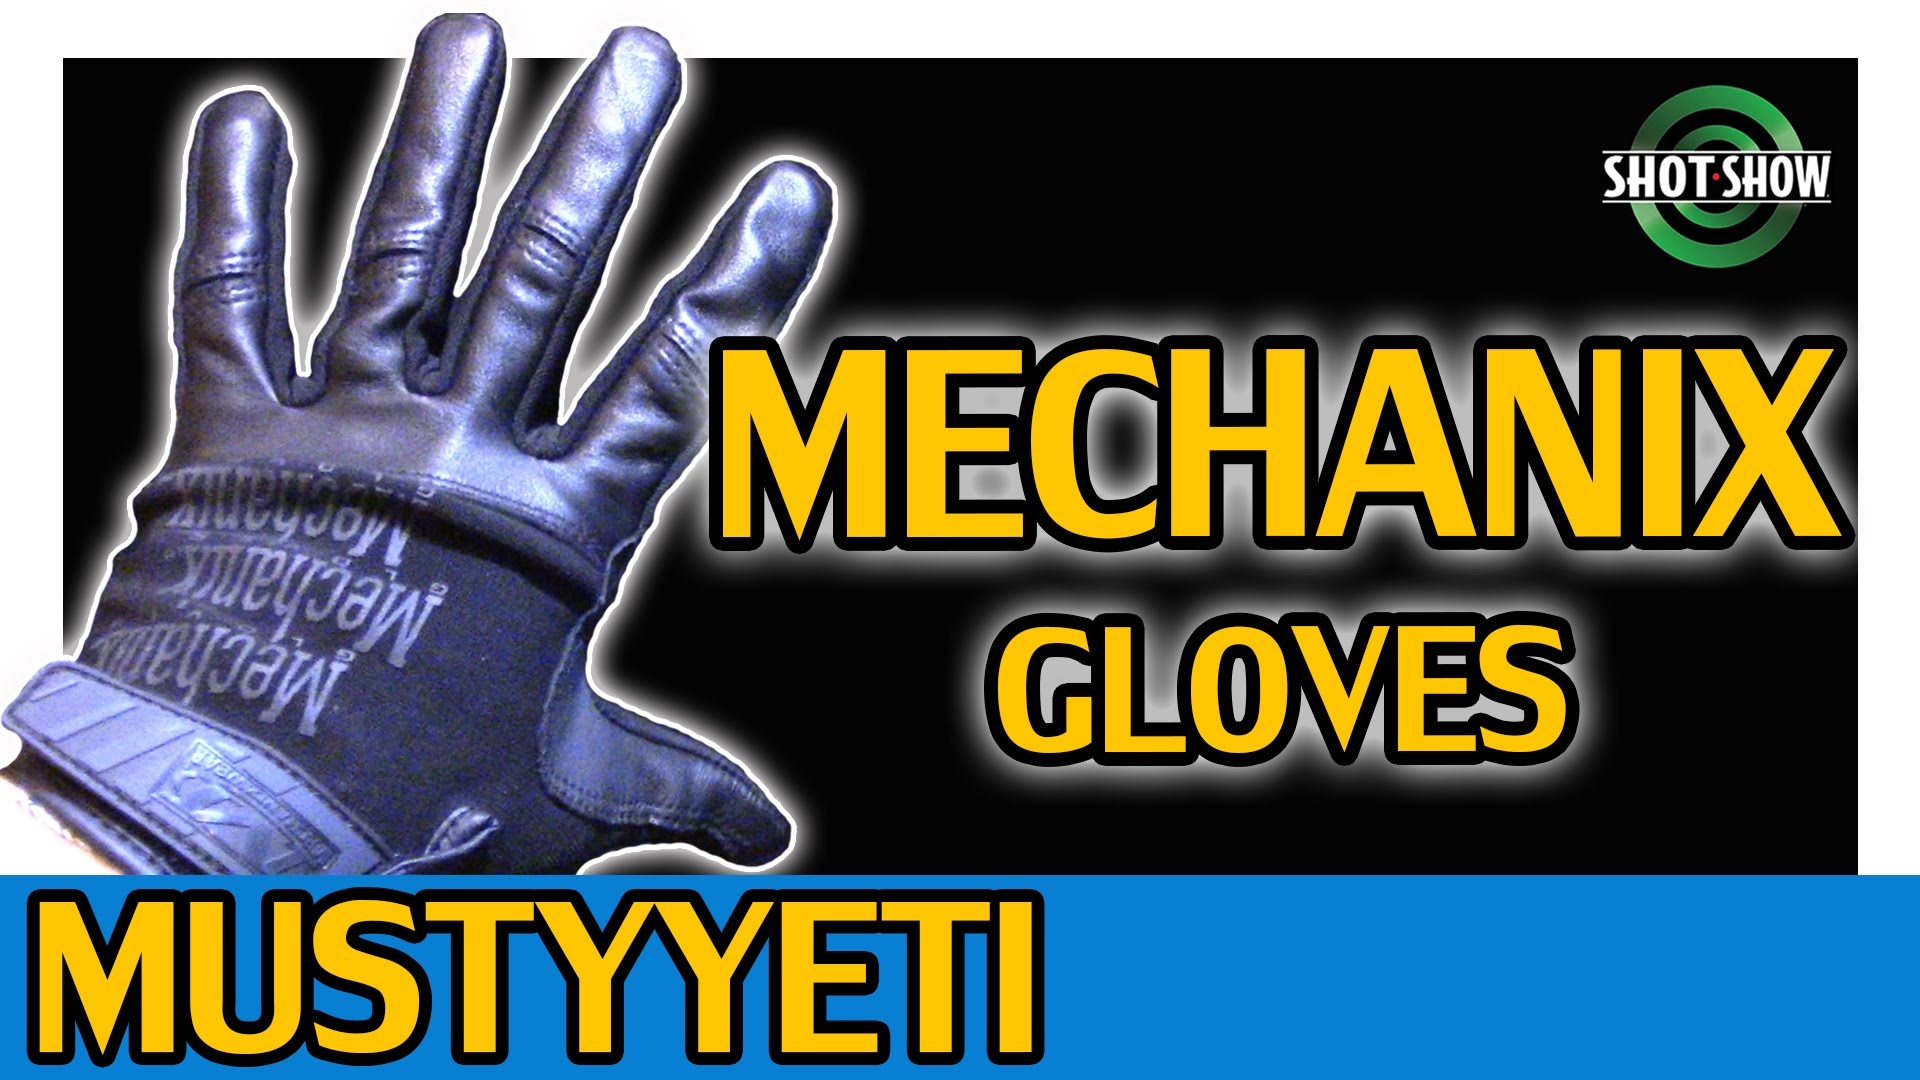 Mechanix Gloves | Shot Show | MustyYeti